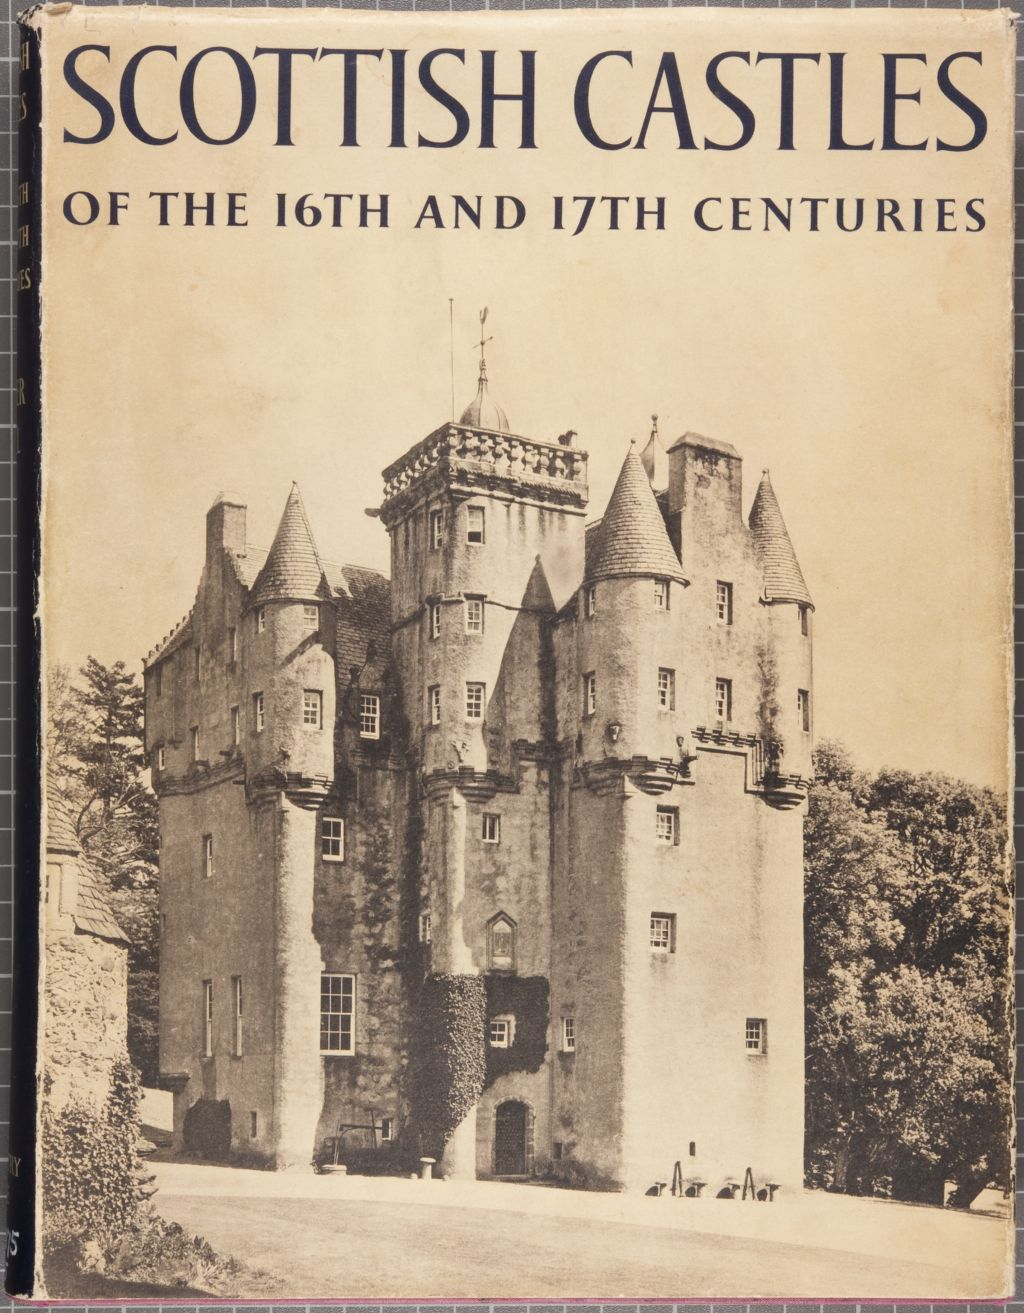 Scottish castles of the 16th and 17th centuries